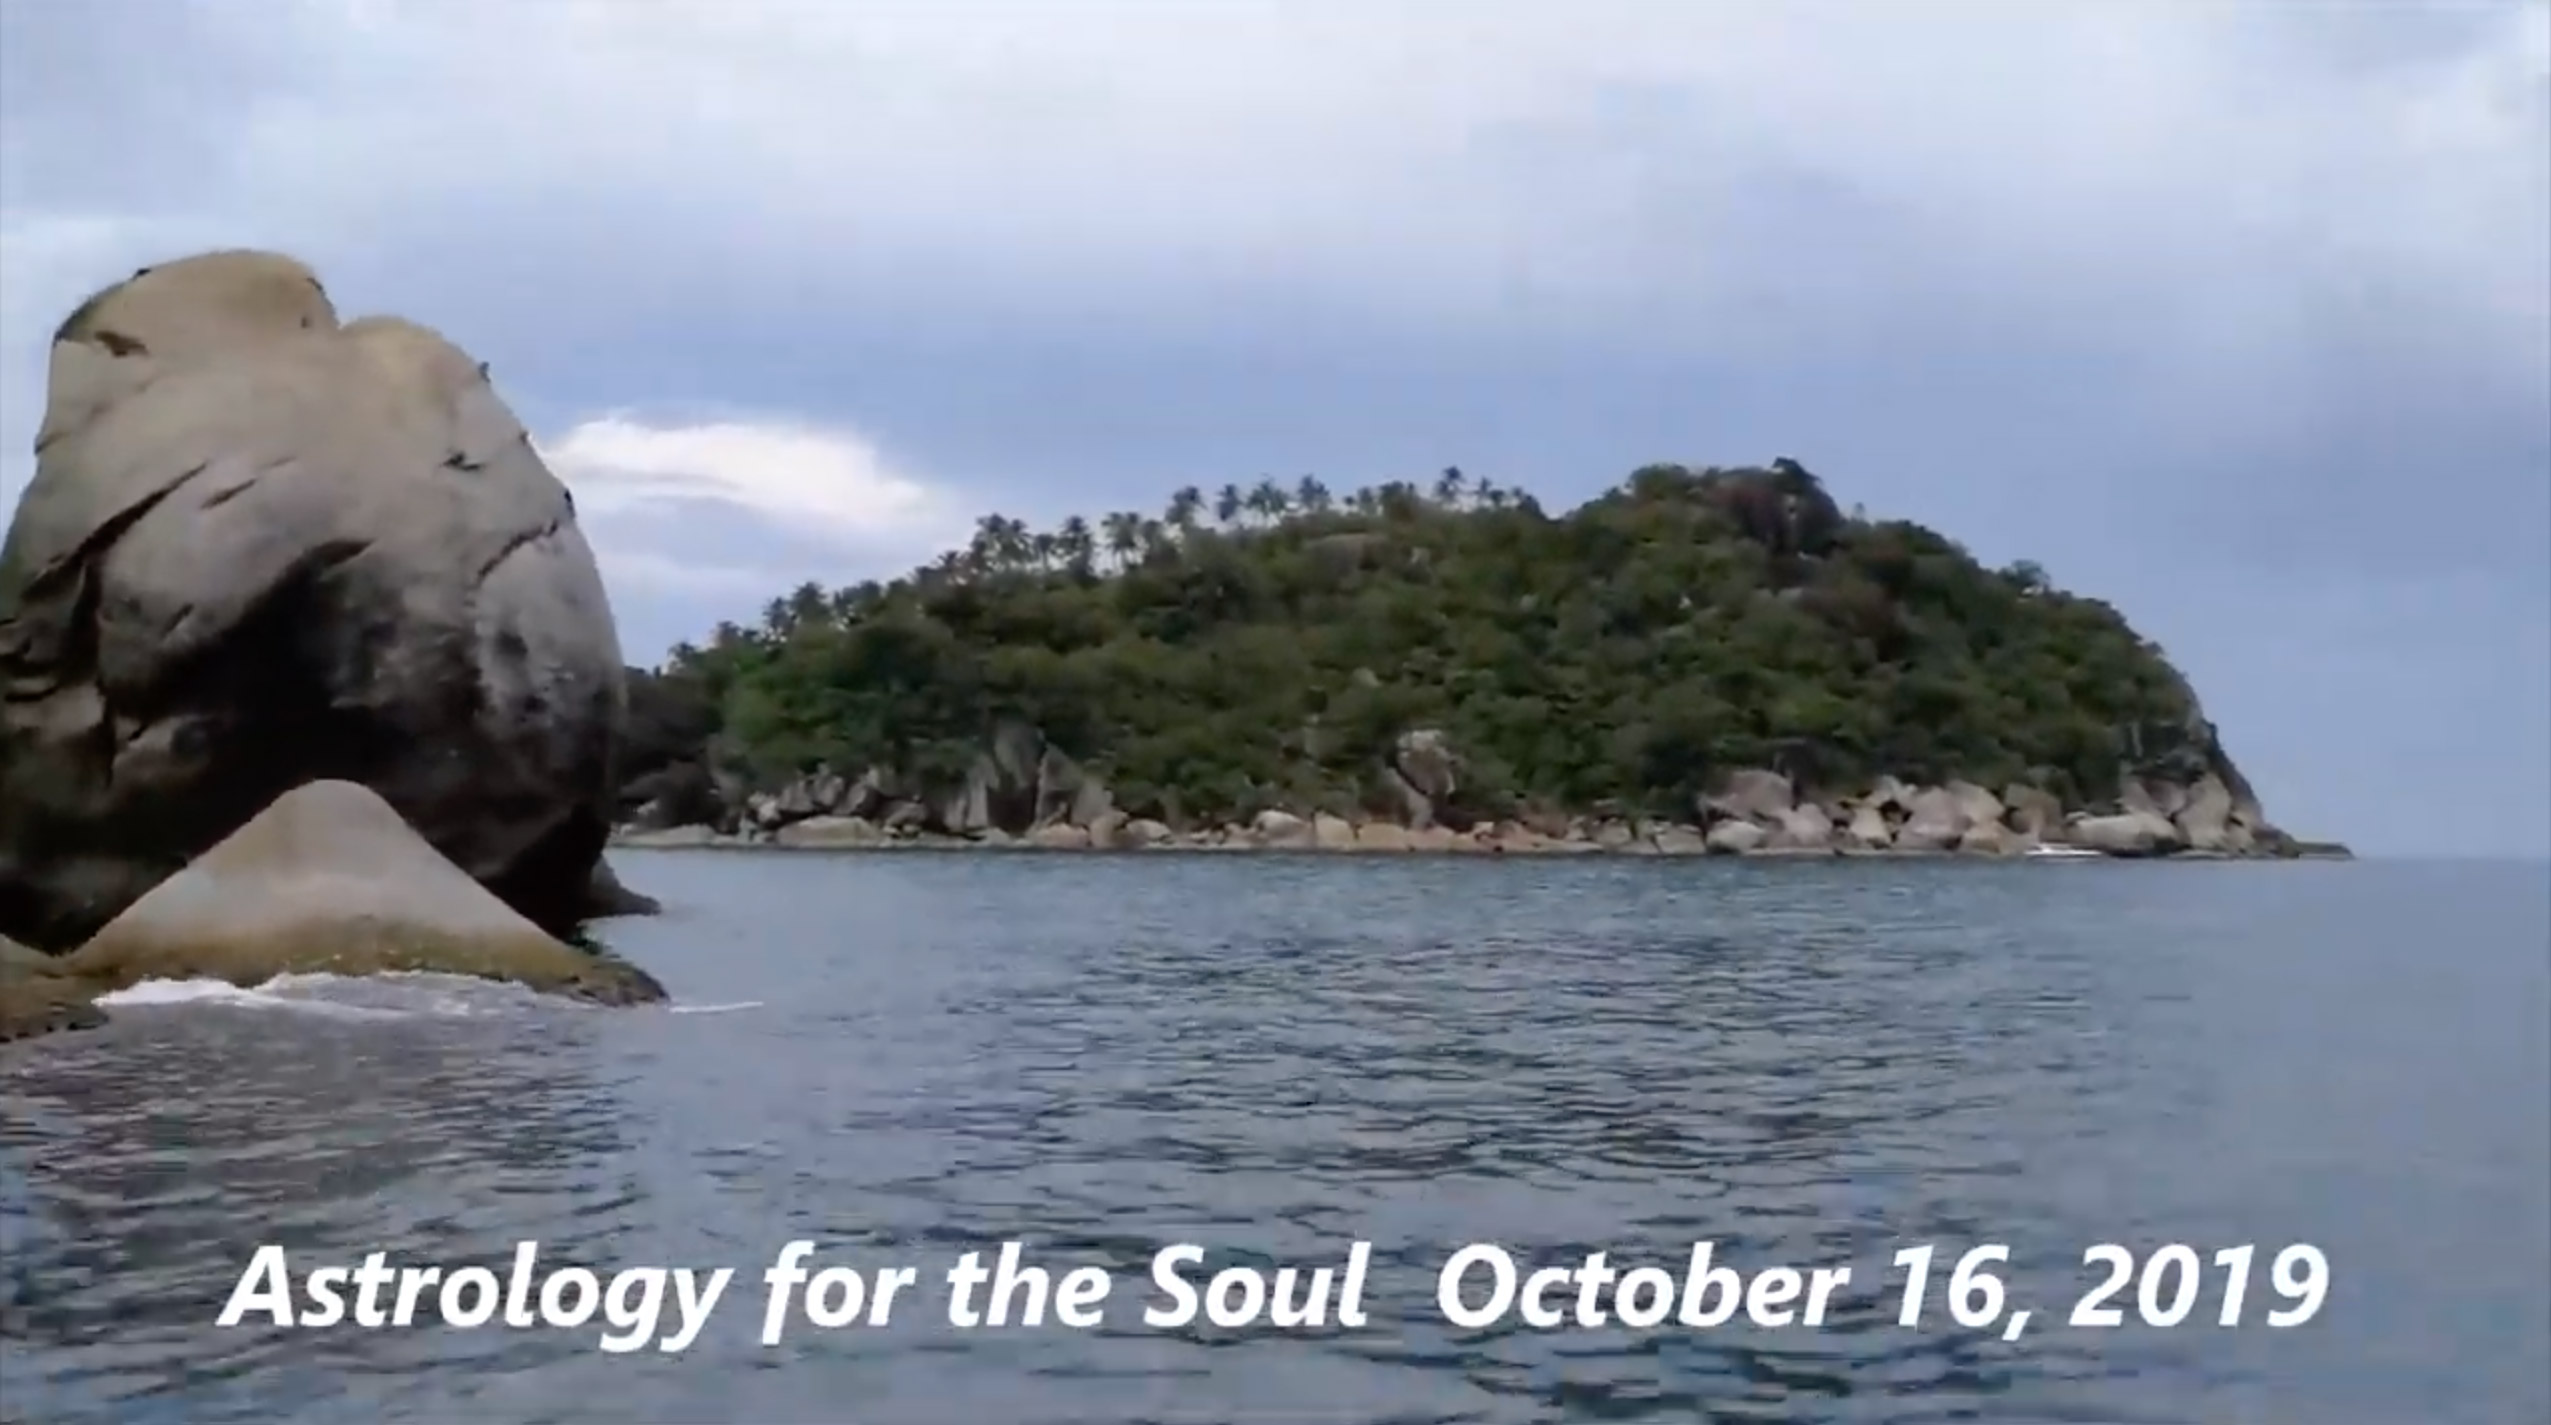 Oct 16th, 2019 – Pele Report, Astrology Forecast